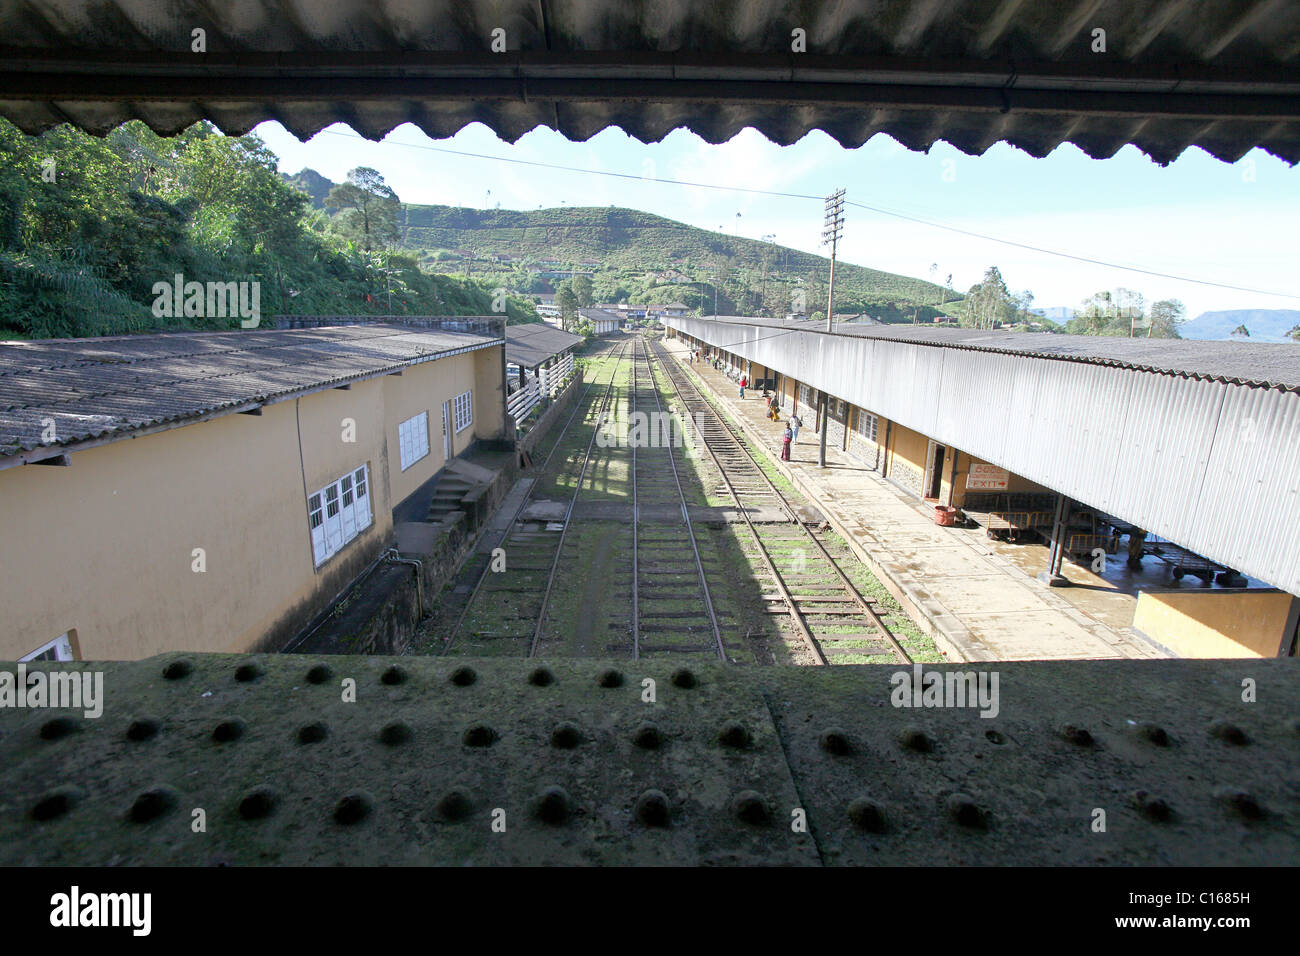 View of a railroad station platform from a bridge, Sri Lanka - Stock Image